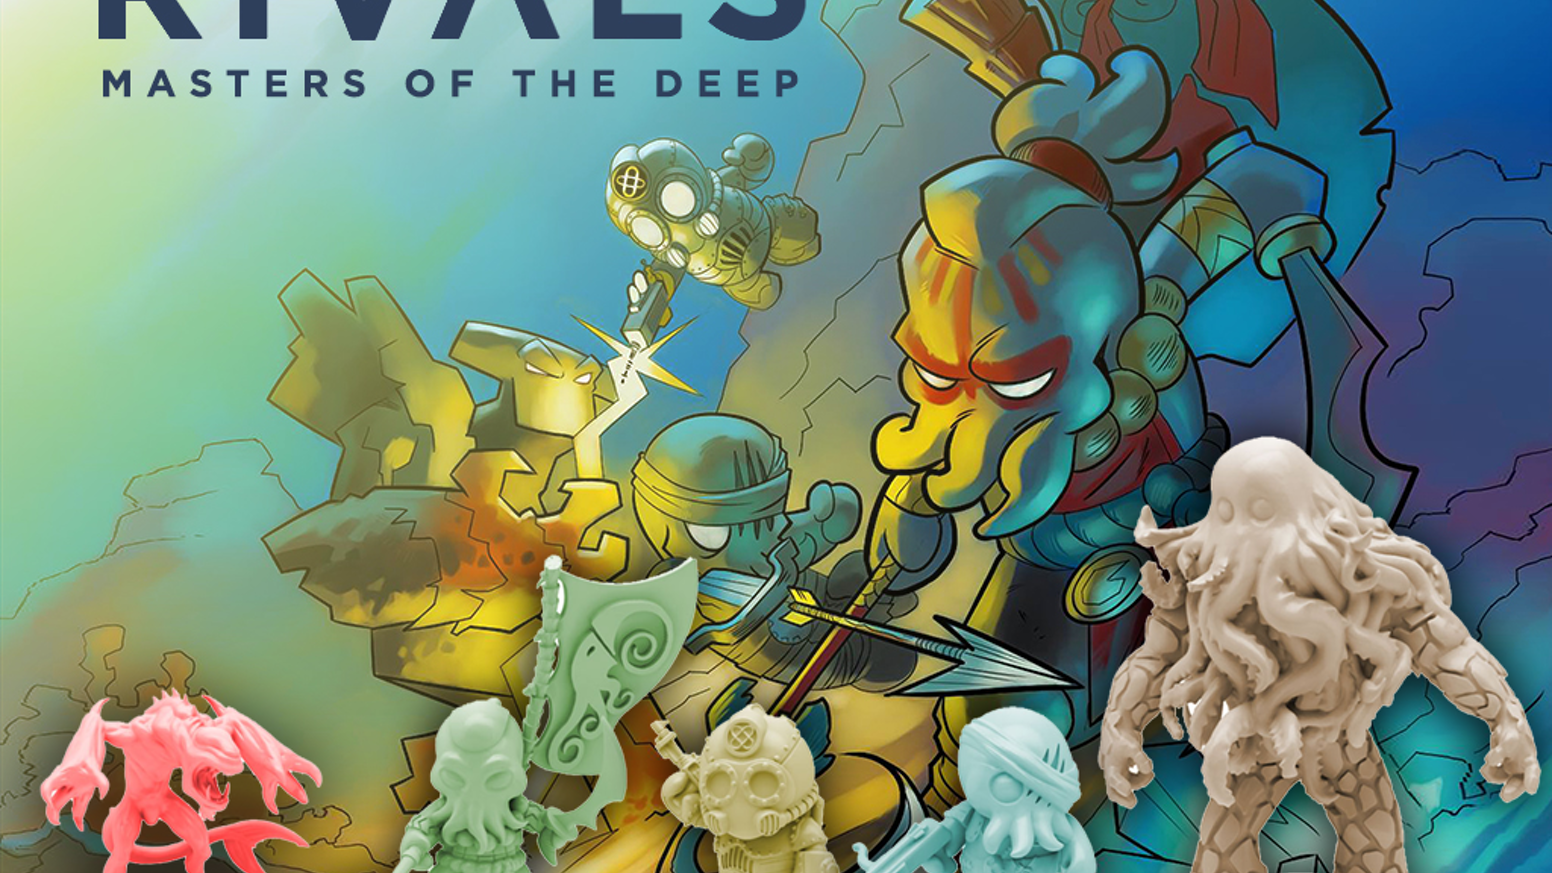 A tactical Miniatures board game for 2-4 players set in a mysterious underwater realm where 4 factions battle for supremacy.